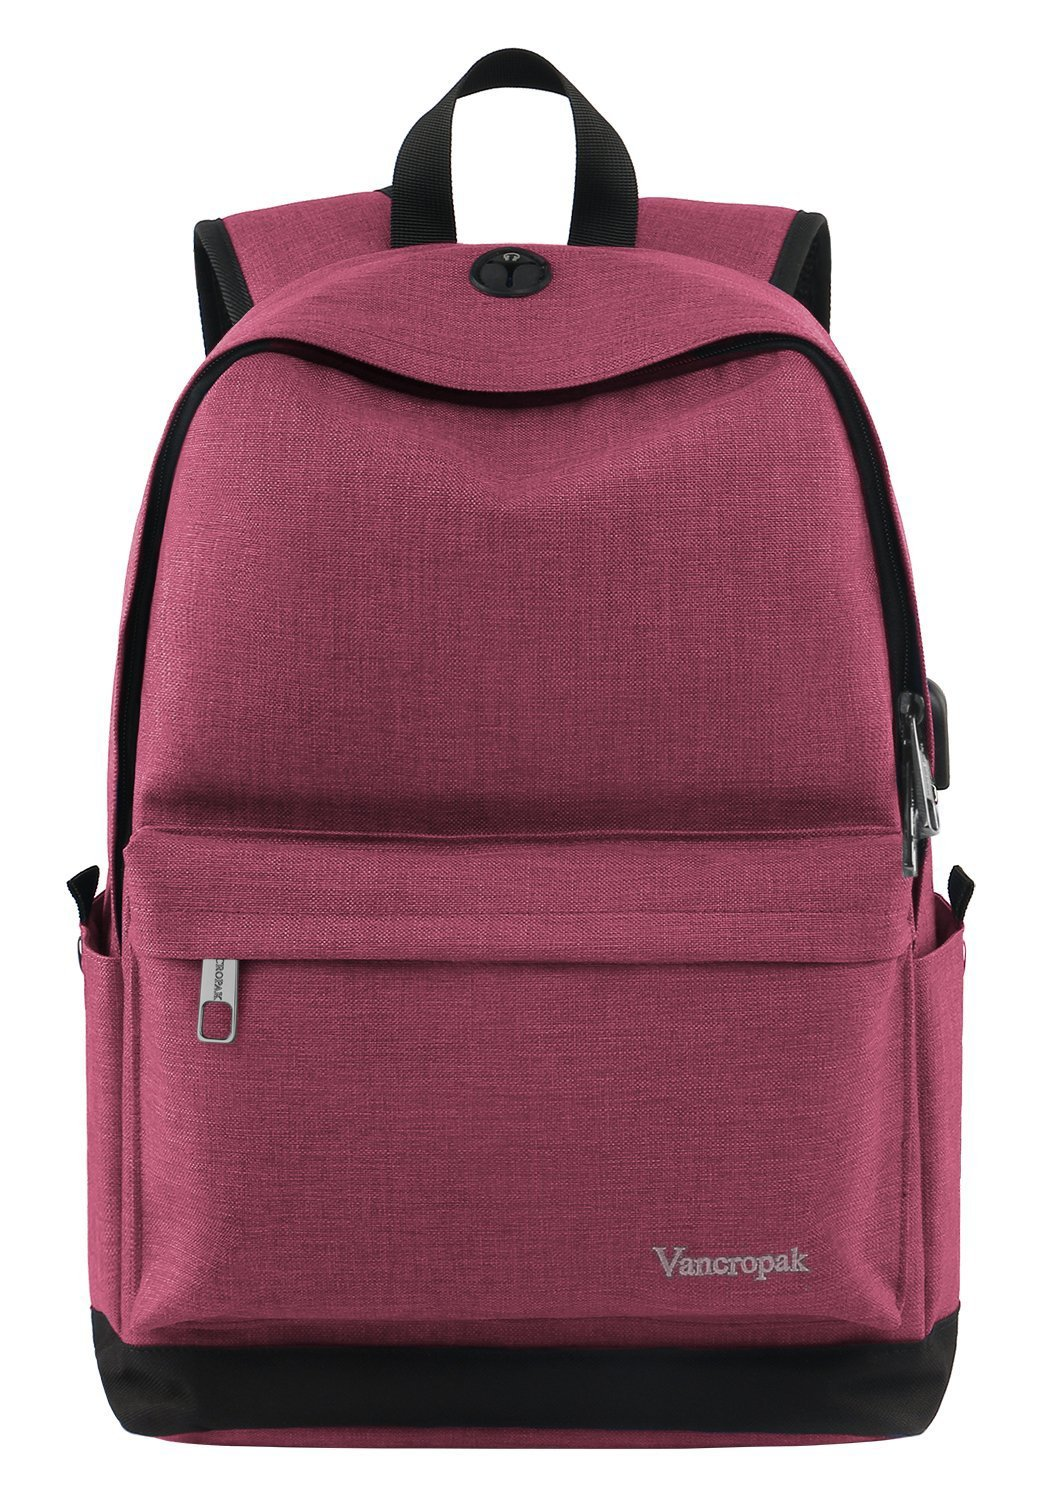 Student Backpack for Women, College High School Laptop Backpack with Charger for Men Girls Boys, Water Resistant Canvas Bookbag Weekend Bag Fits 15.6 Inch MacBook Tablet and Books -Pink